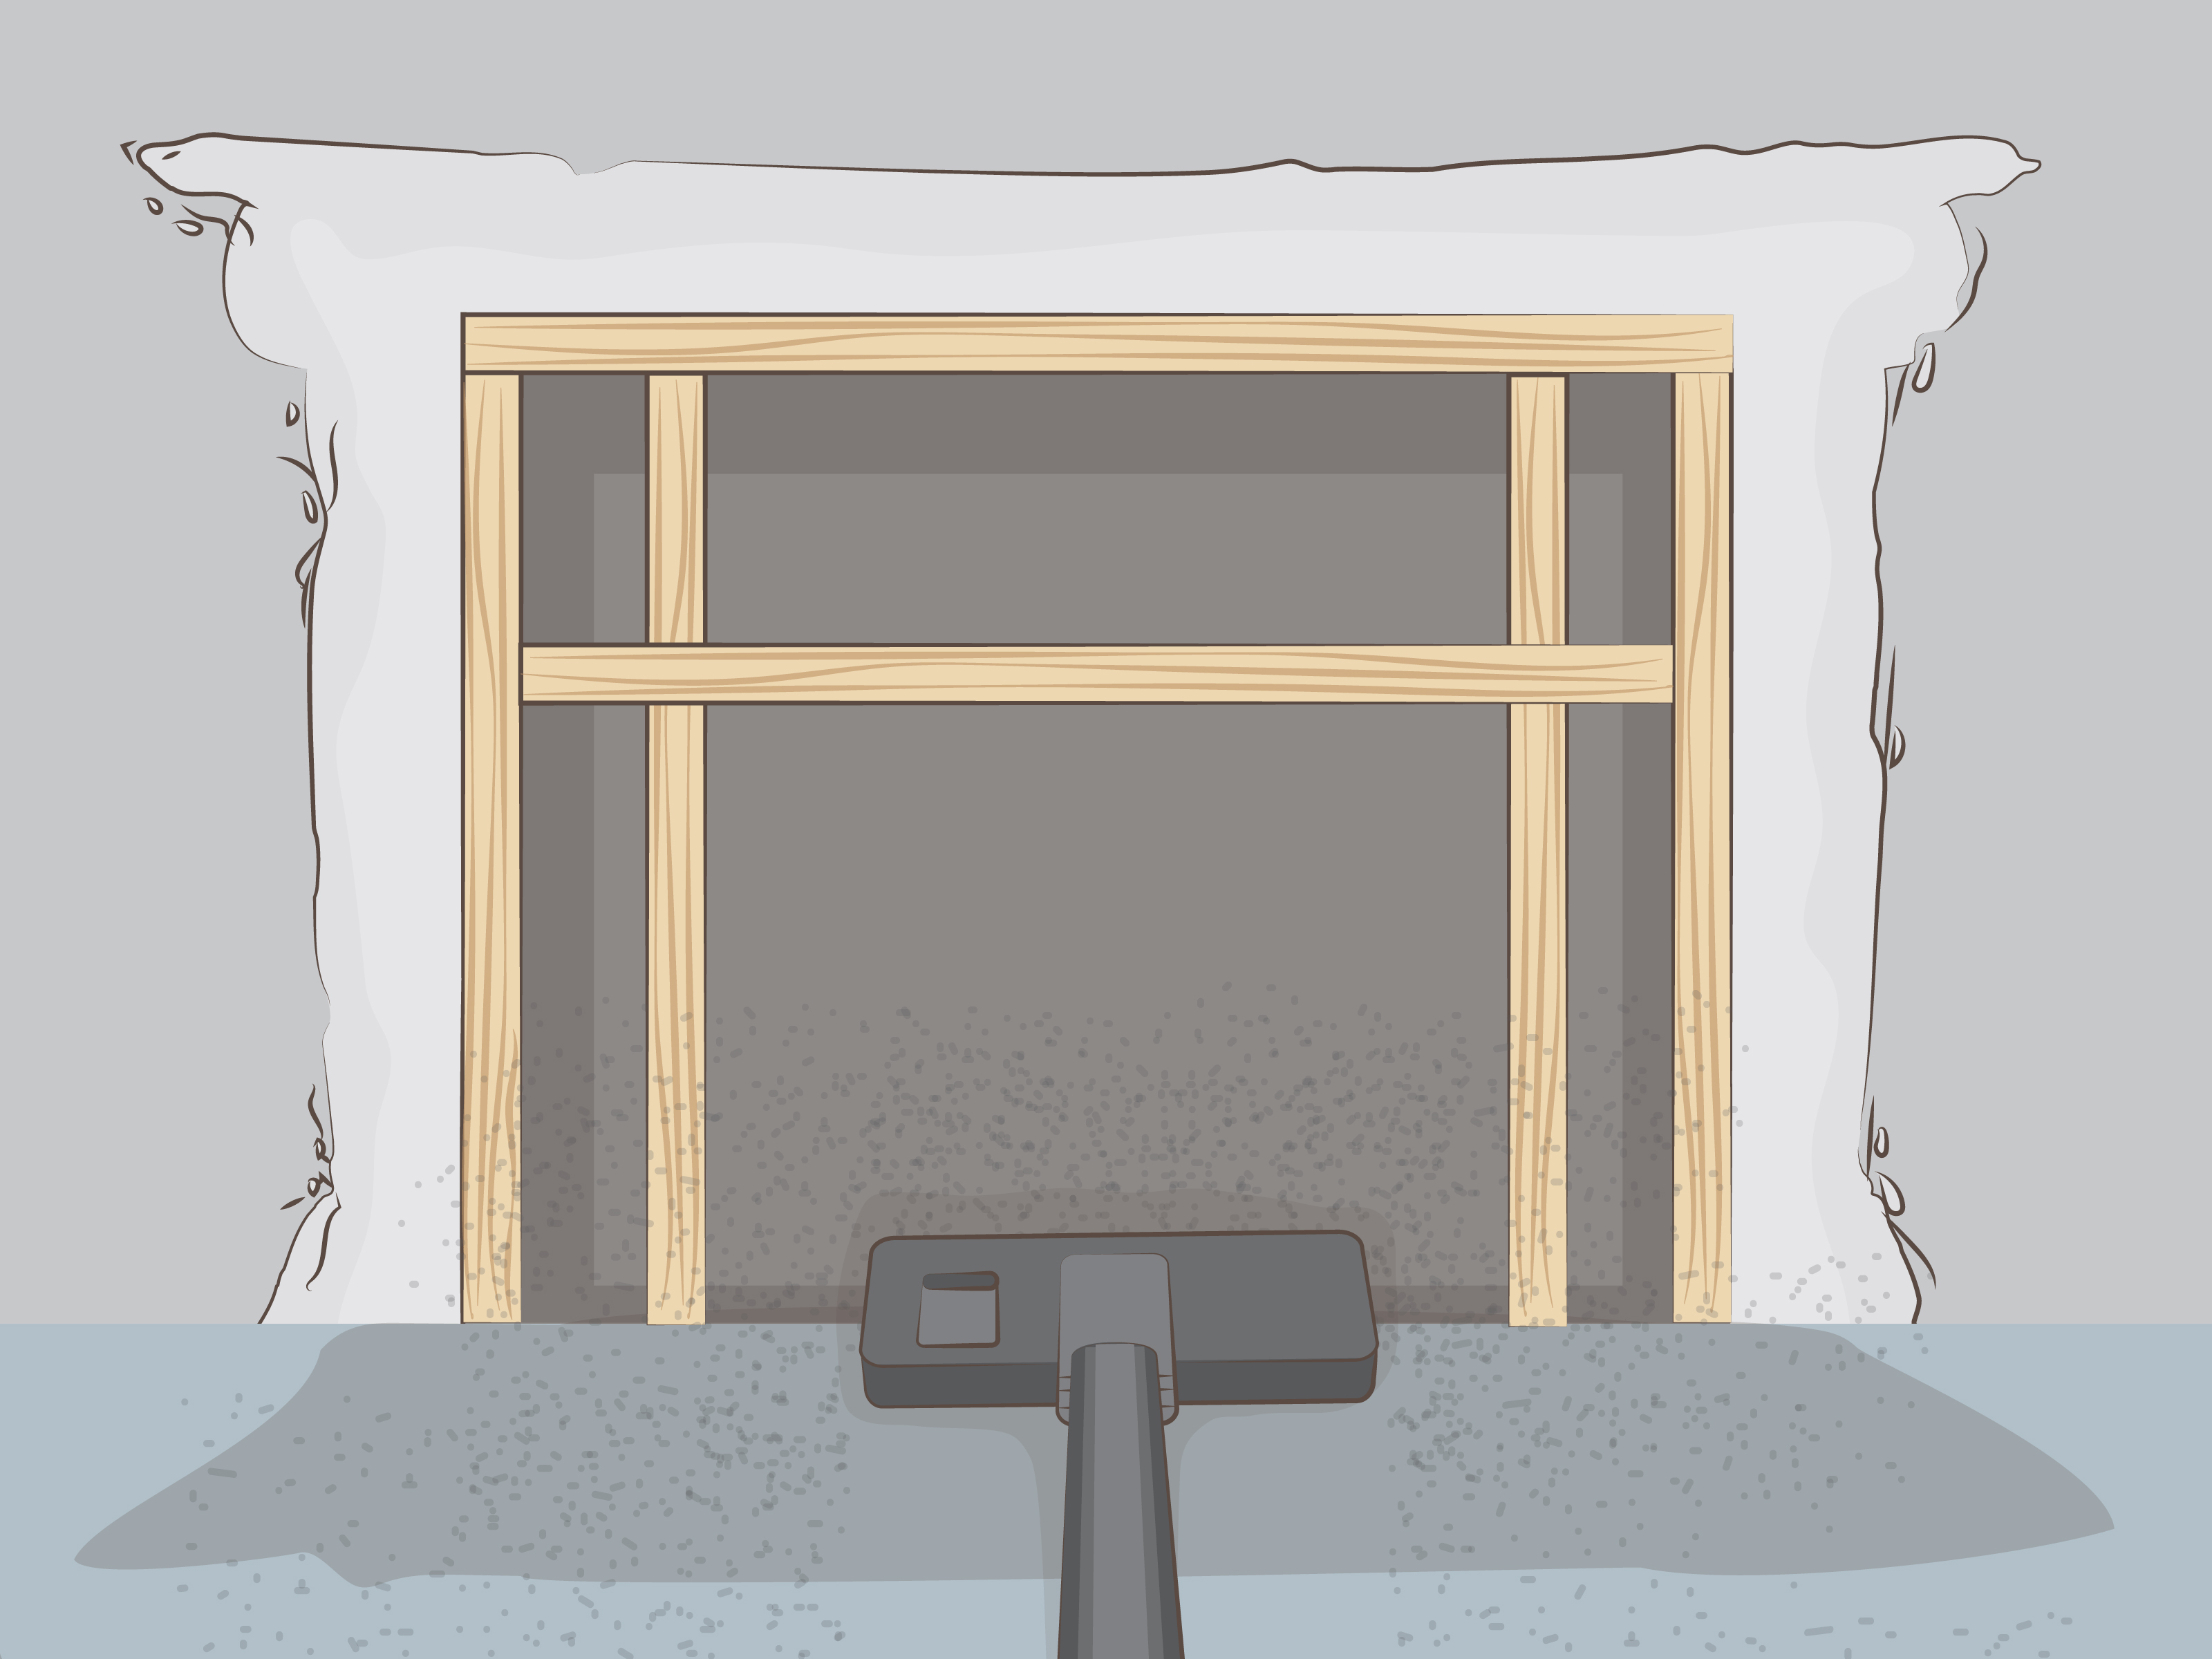 Removing Gas Fireplace Insert How To Remove A Fireplace Insert (with Pictures) - Wikihow